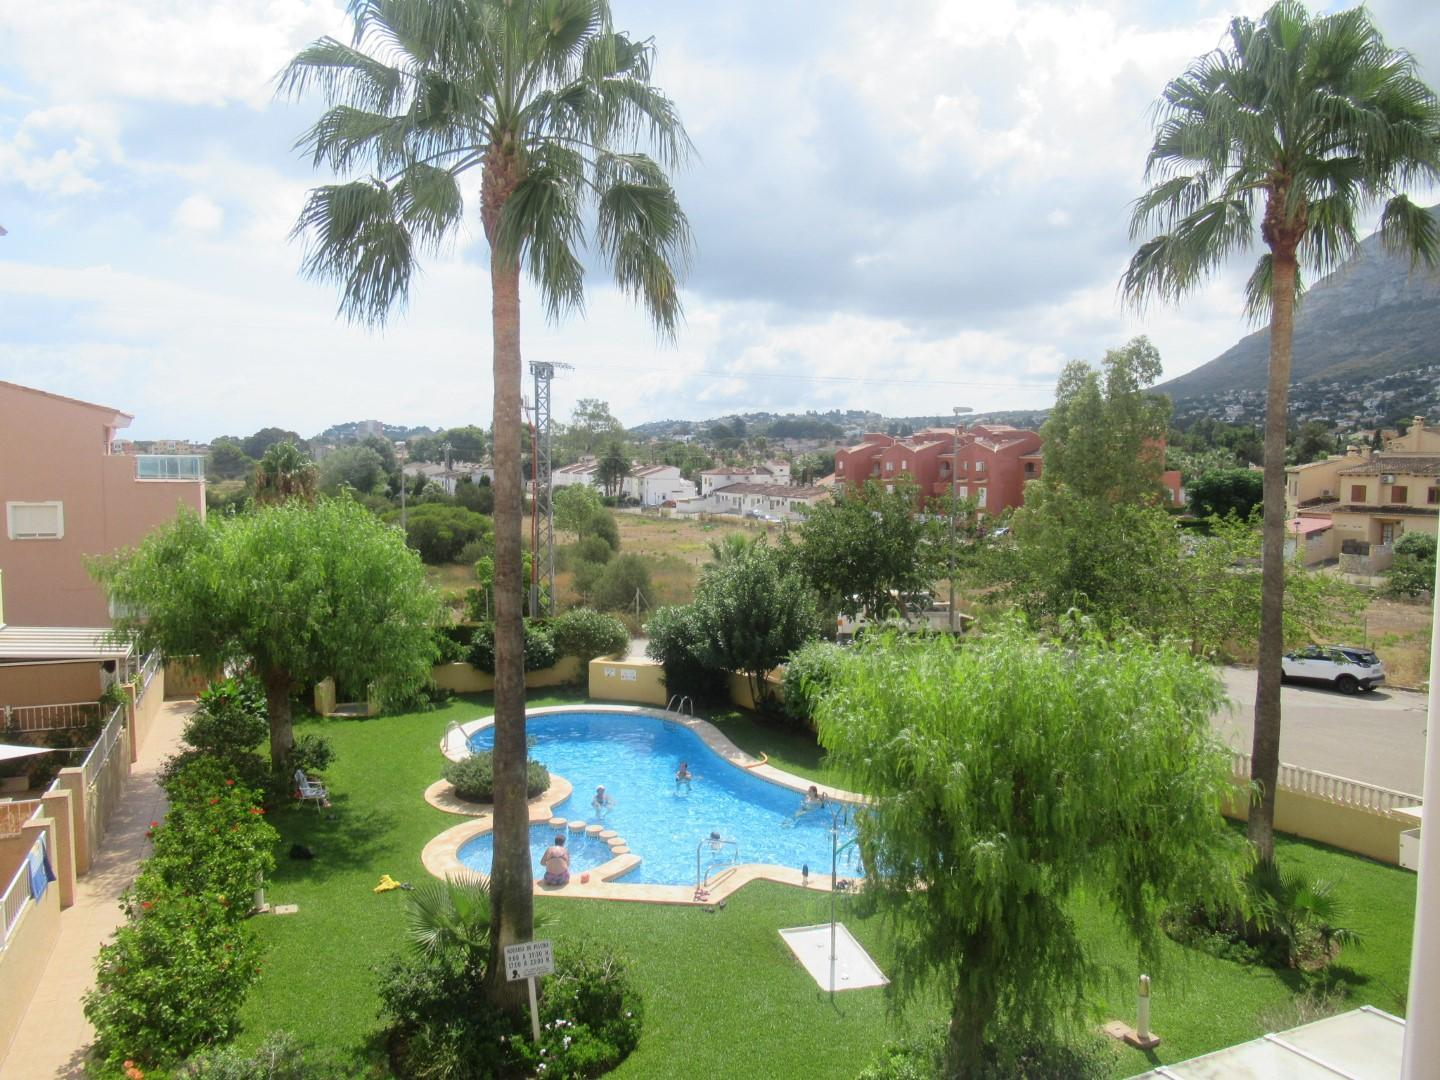 Apartment in DENIA 3 bedroom apartment for sale in DENIA with swimming pool